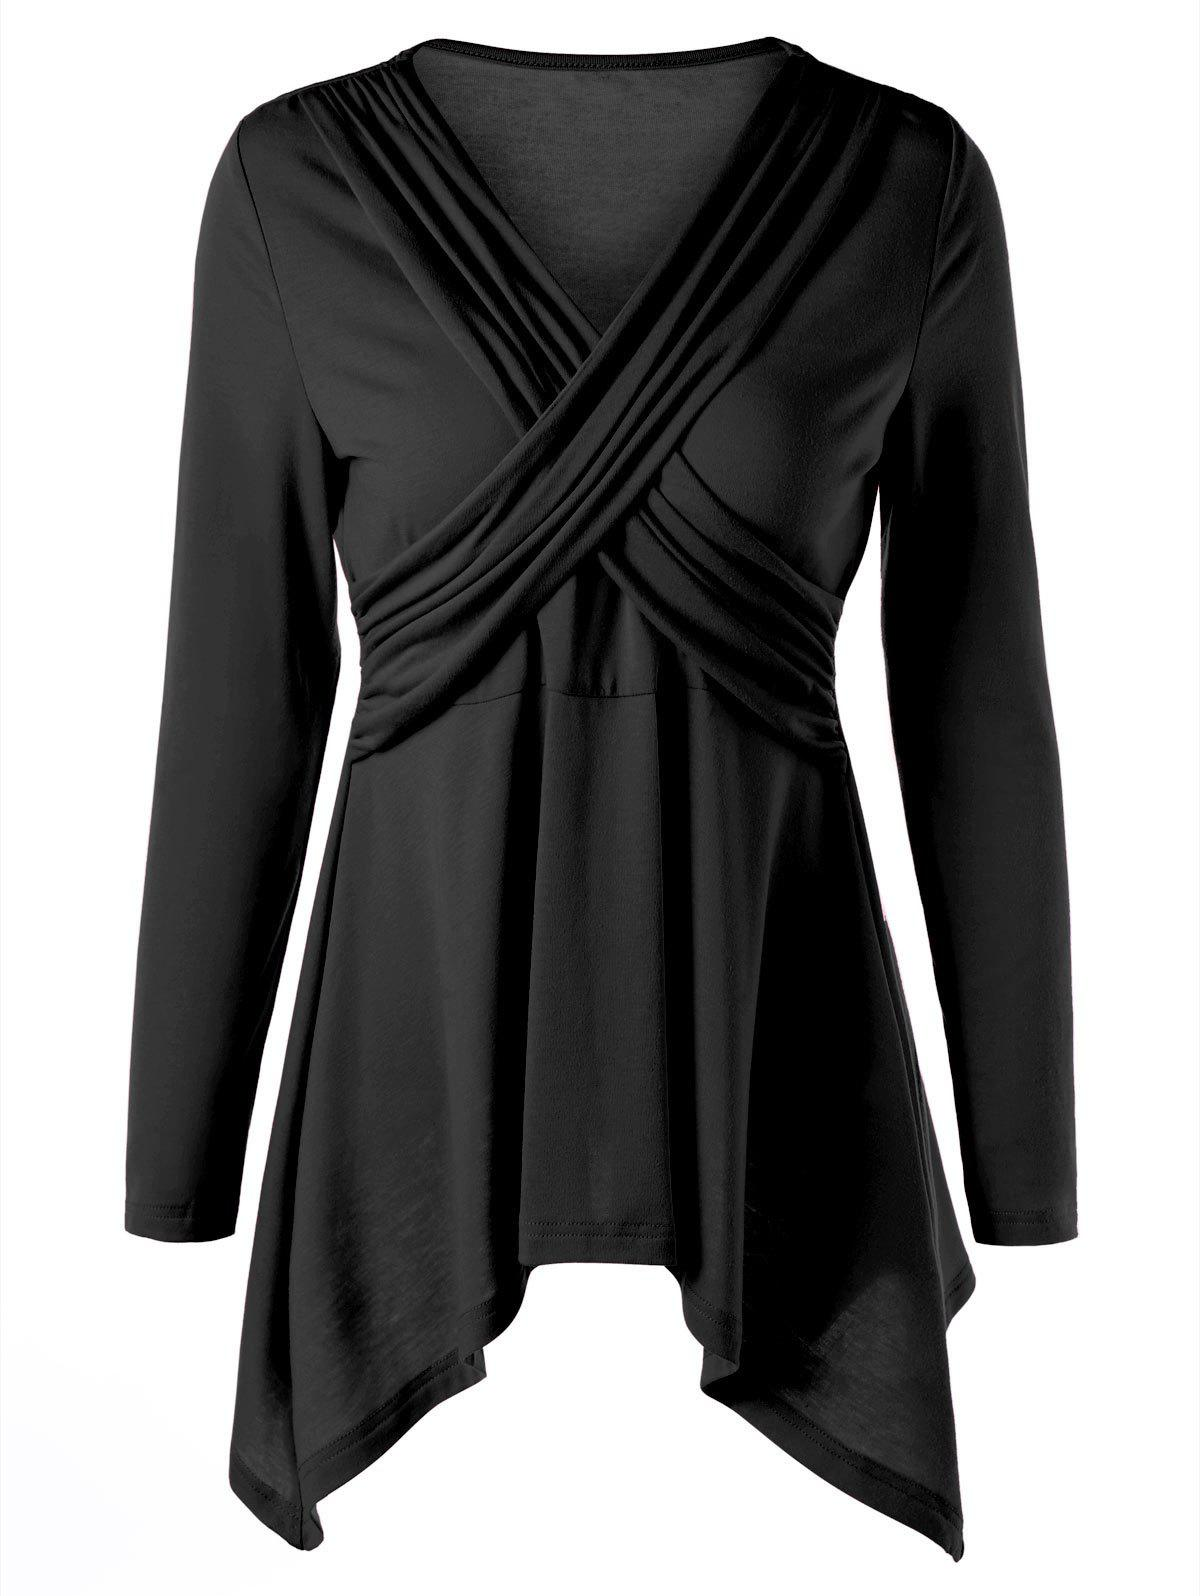 Criss Cross Long Sleeve Peplum Top - BLACK 2XL